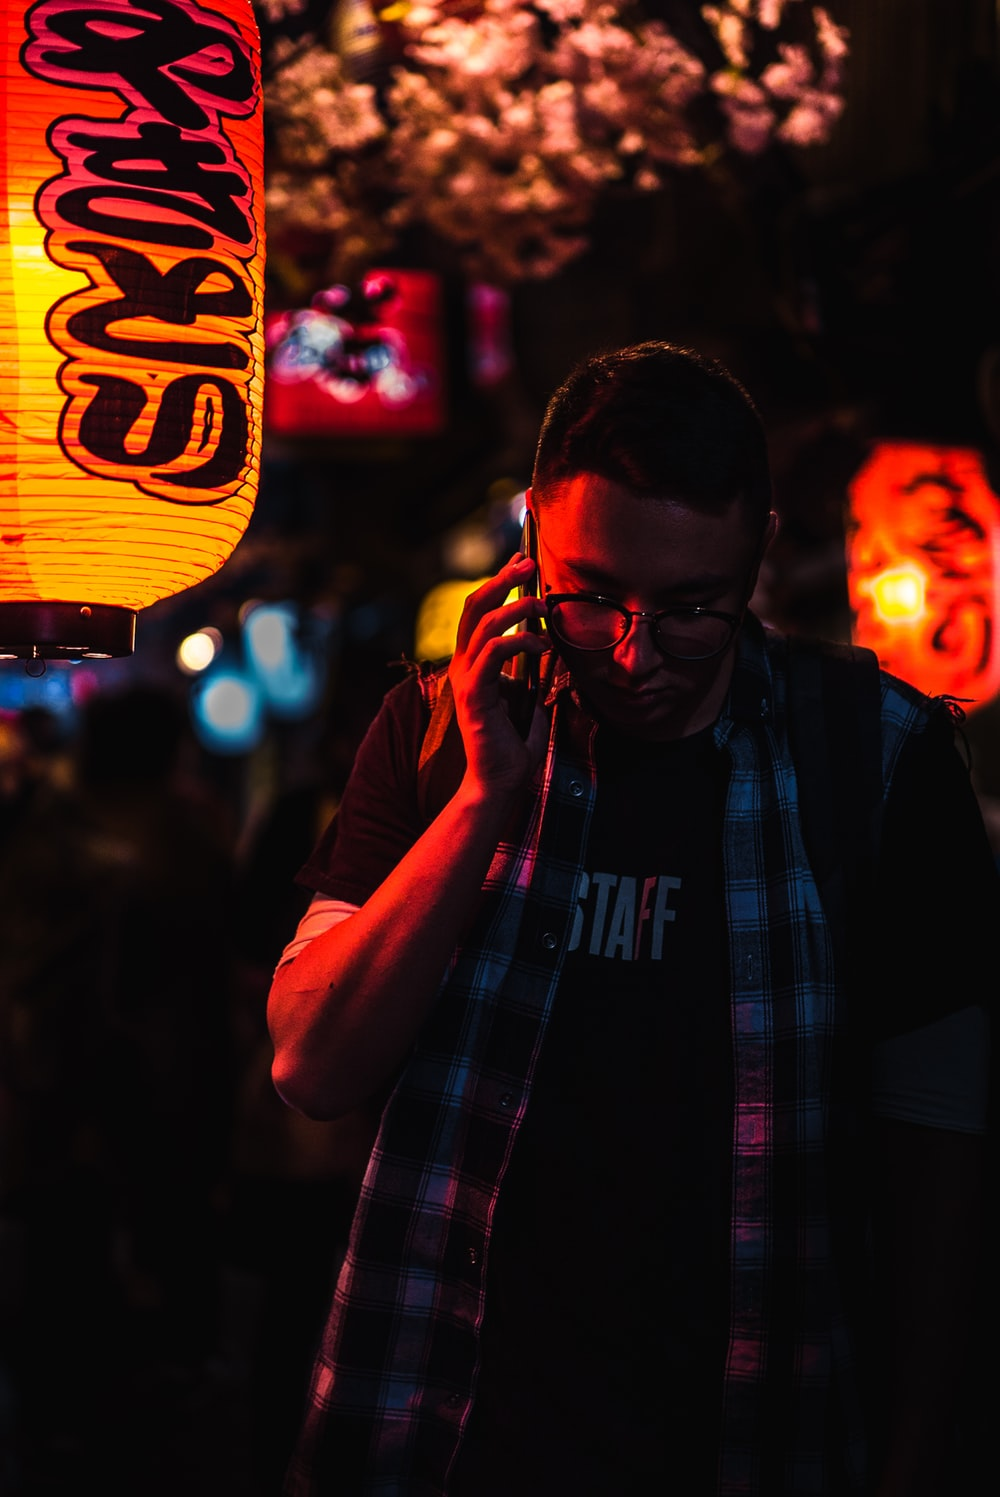 man using phone while standing during night time